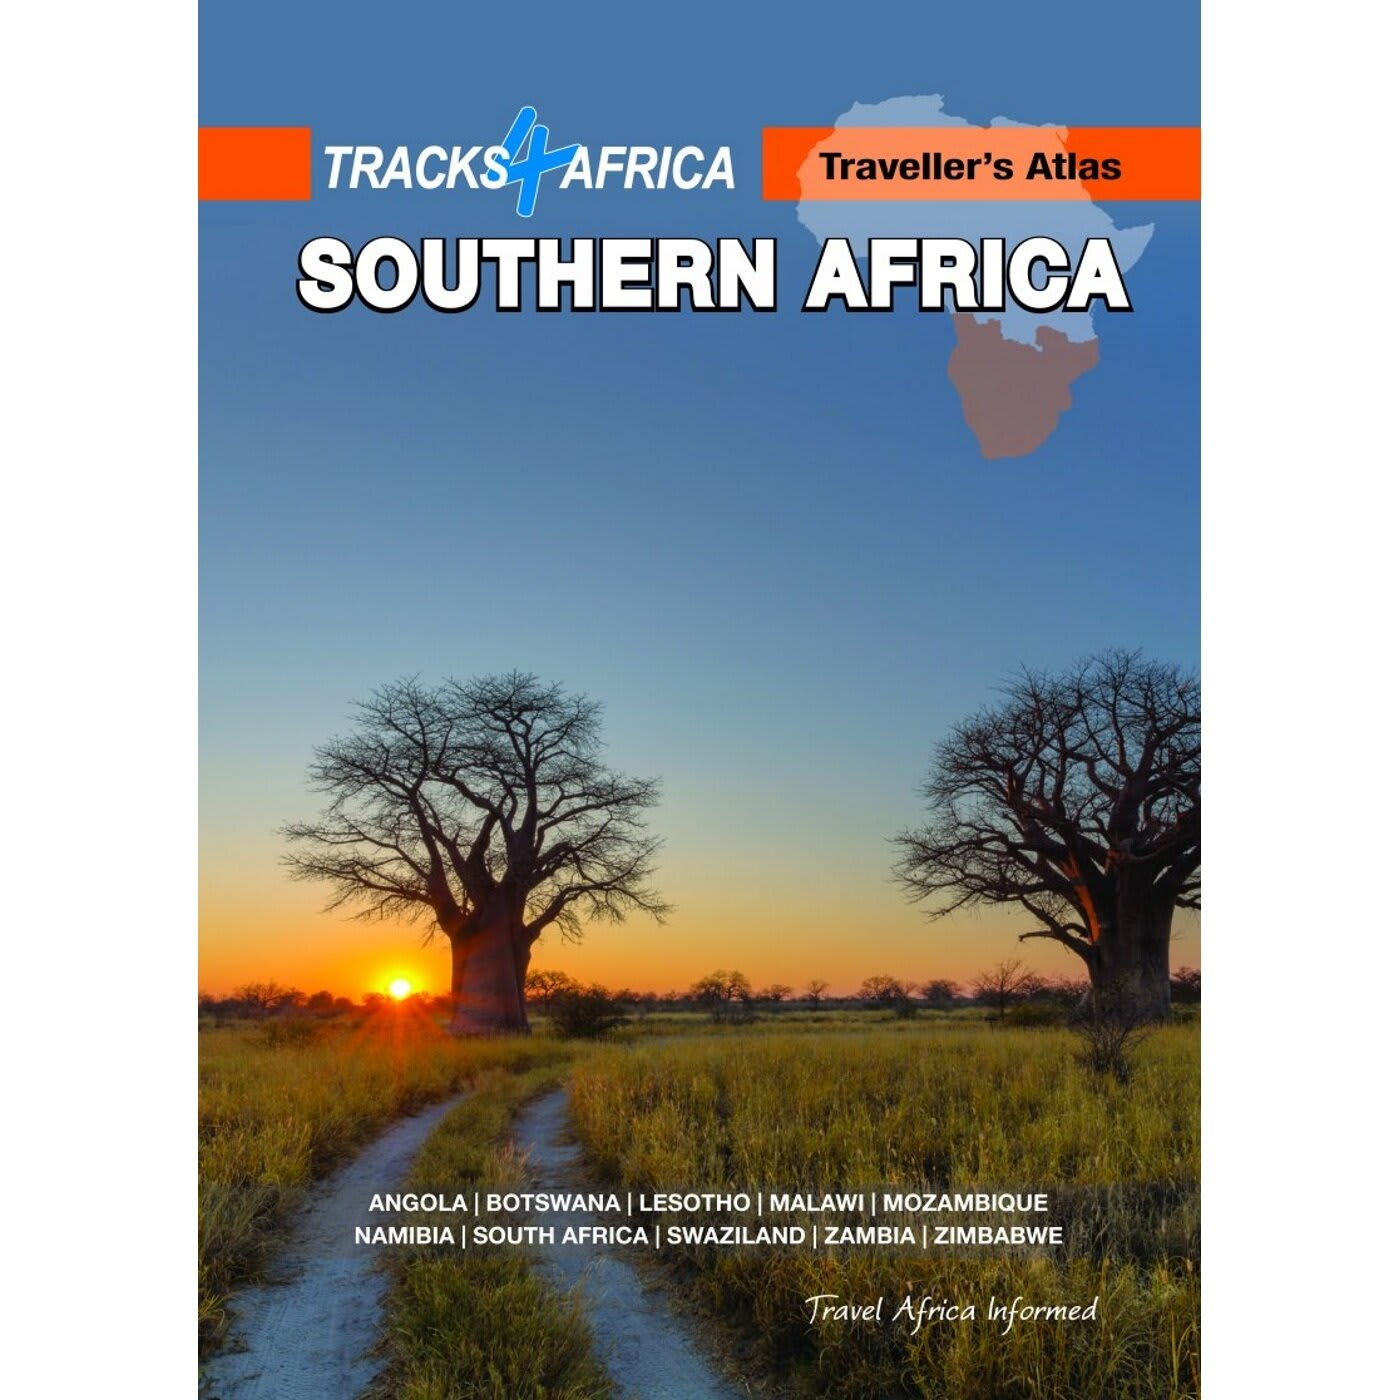 Tracks4Africa Traveller's Atlas